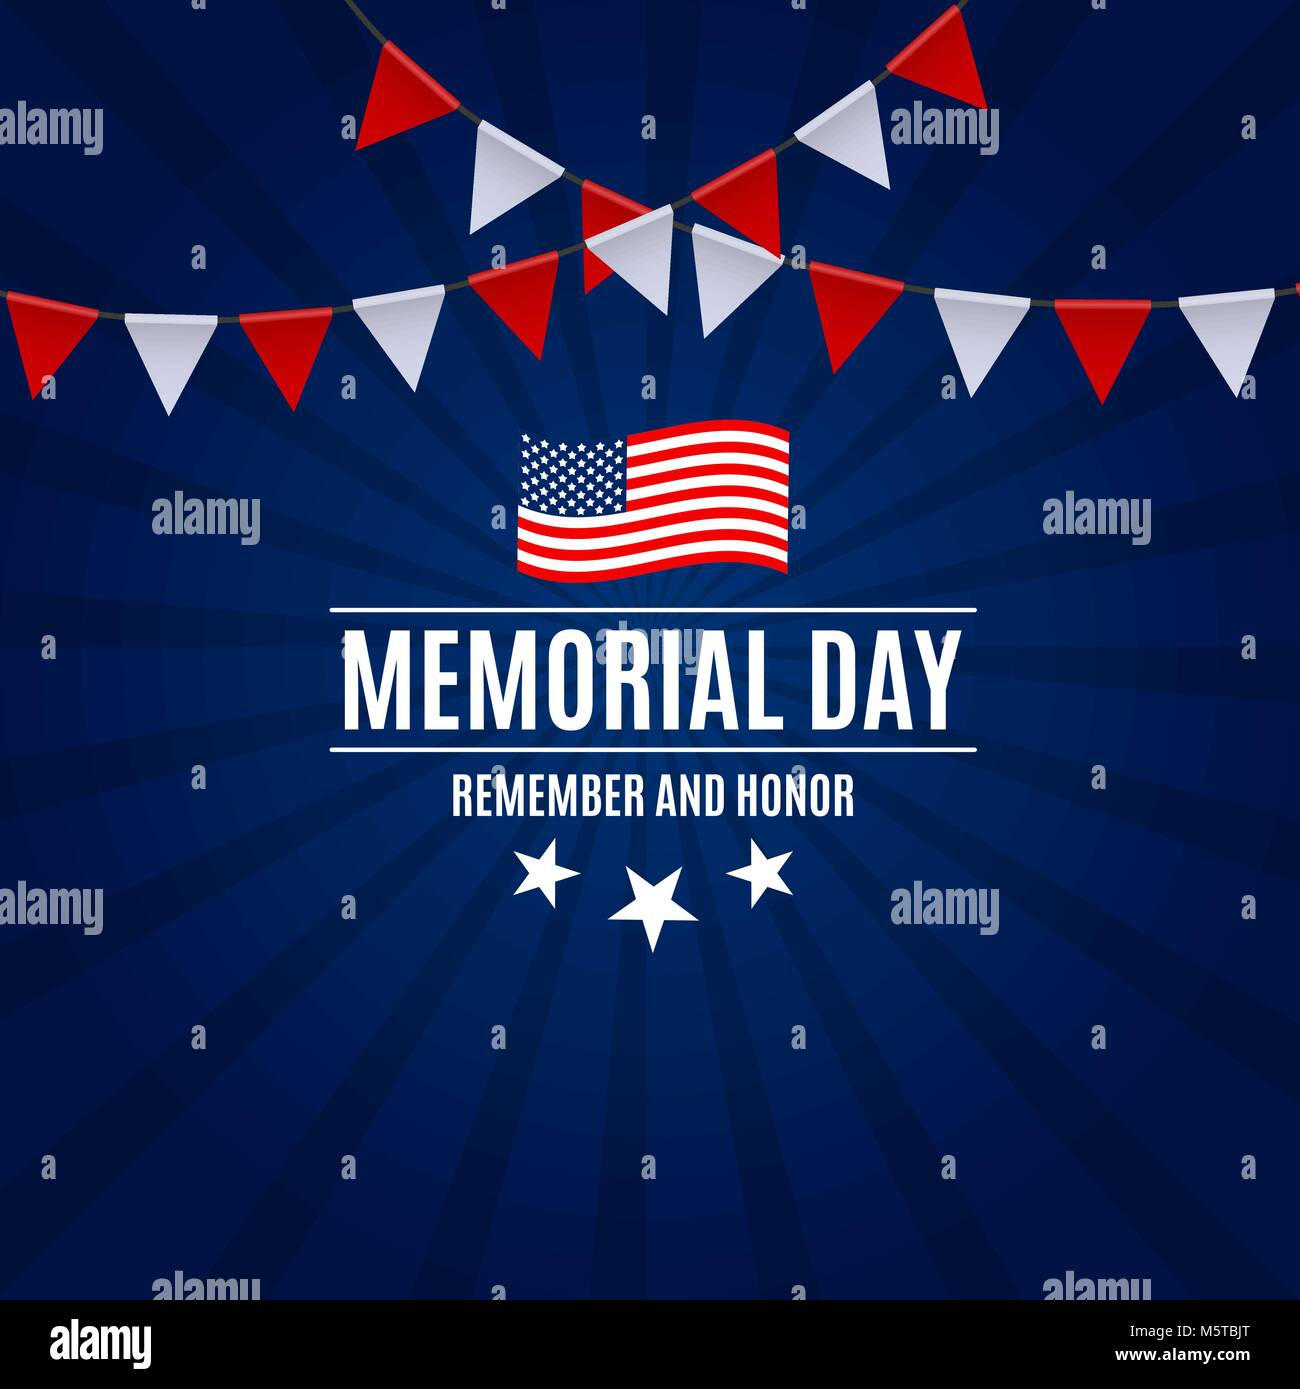 memorial day background template vector illustration stock vector